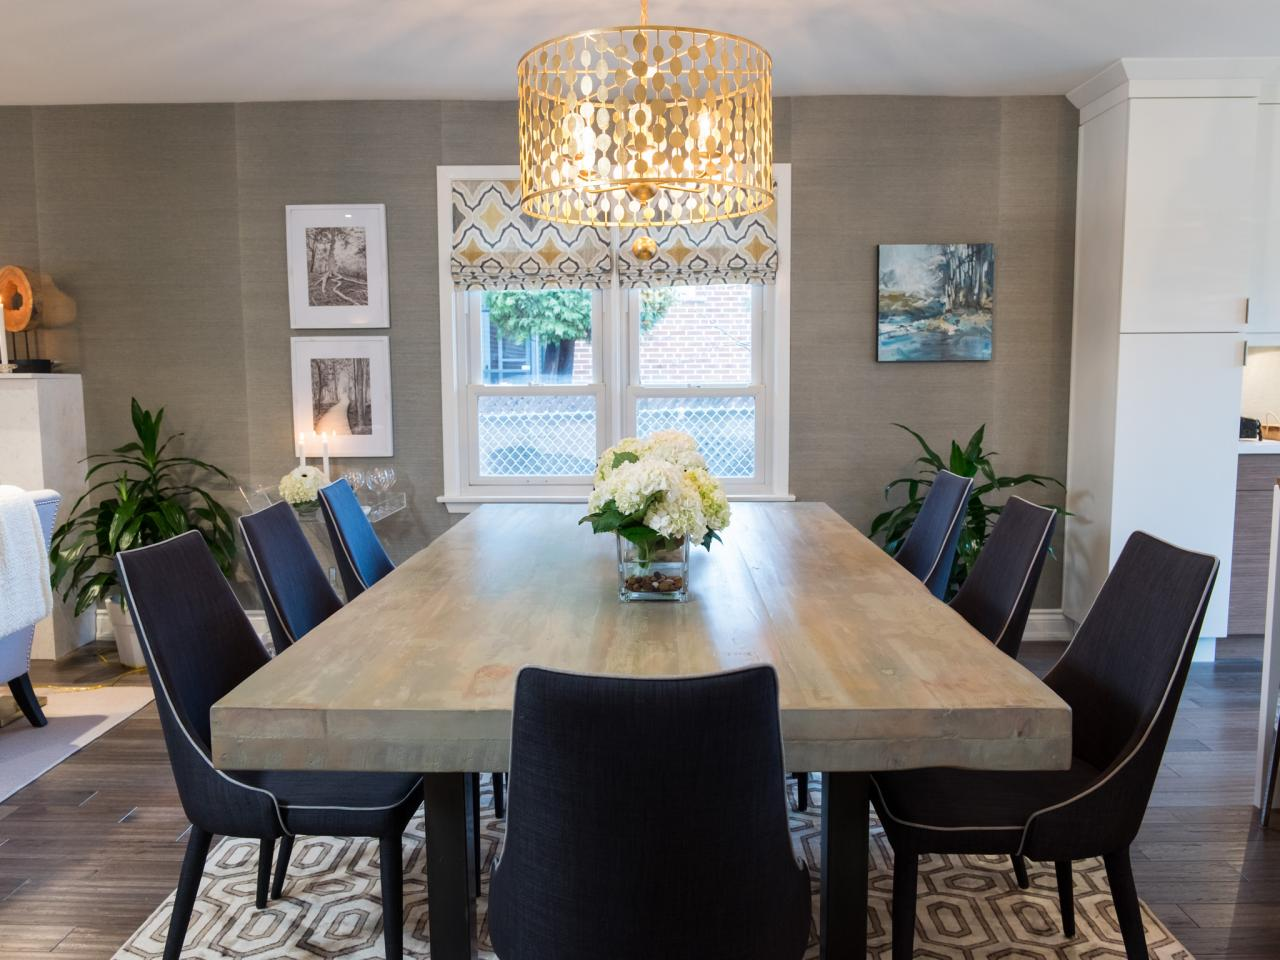 Property brothers hgtv for Design my dining room